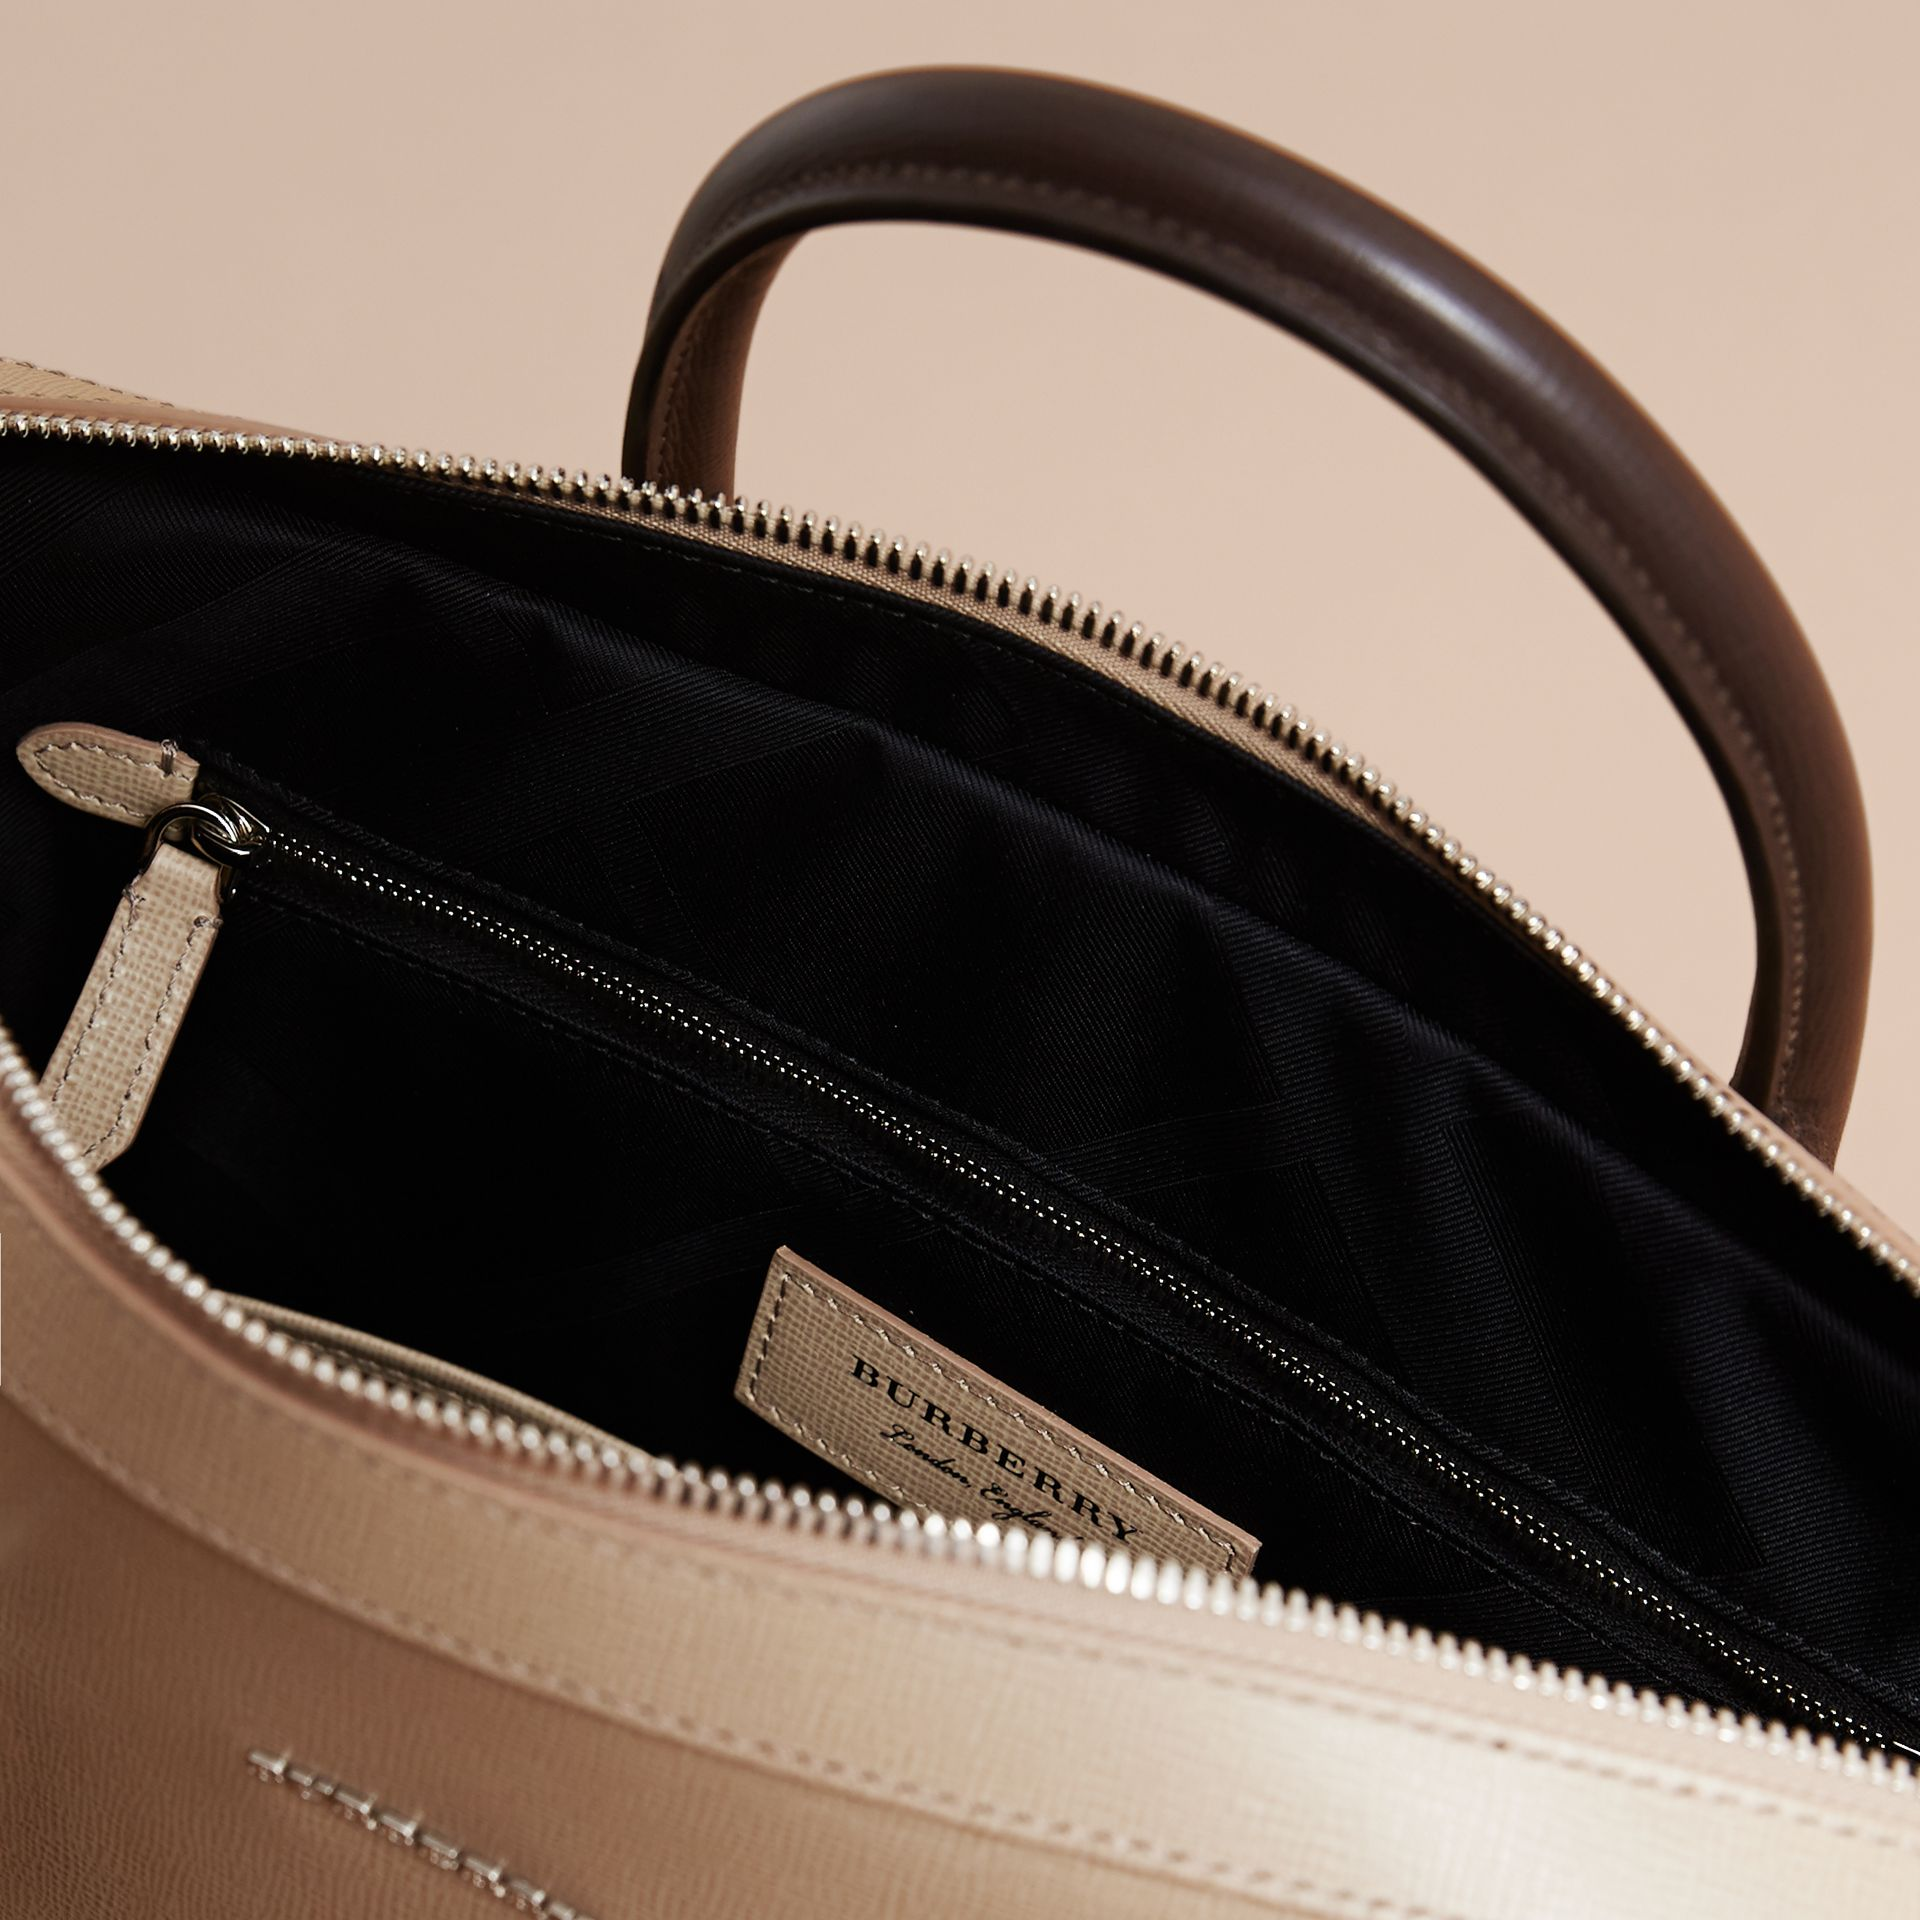 London Leather Briefcase in Honey/bitter Chocolate - Men | Burberry - gallery image 6